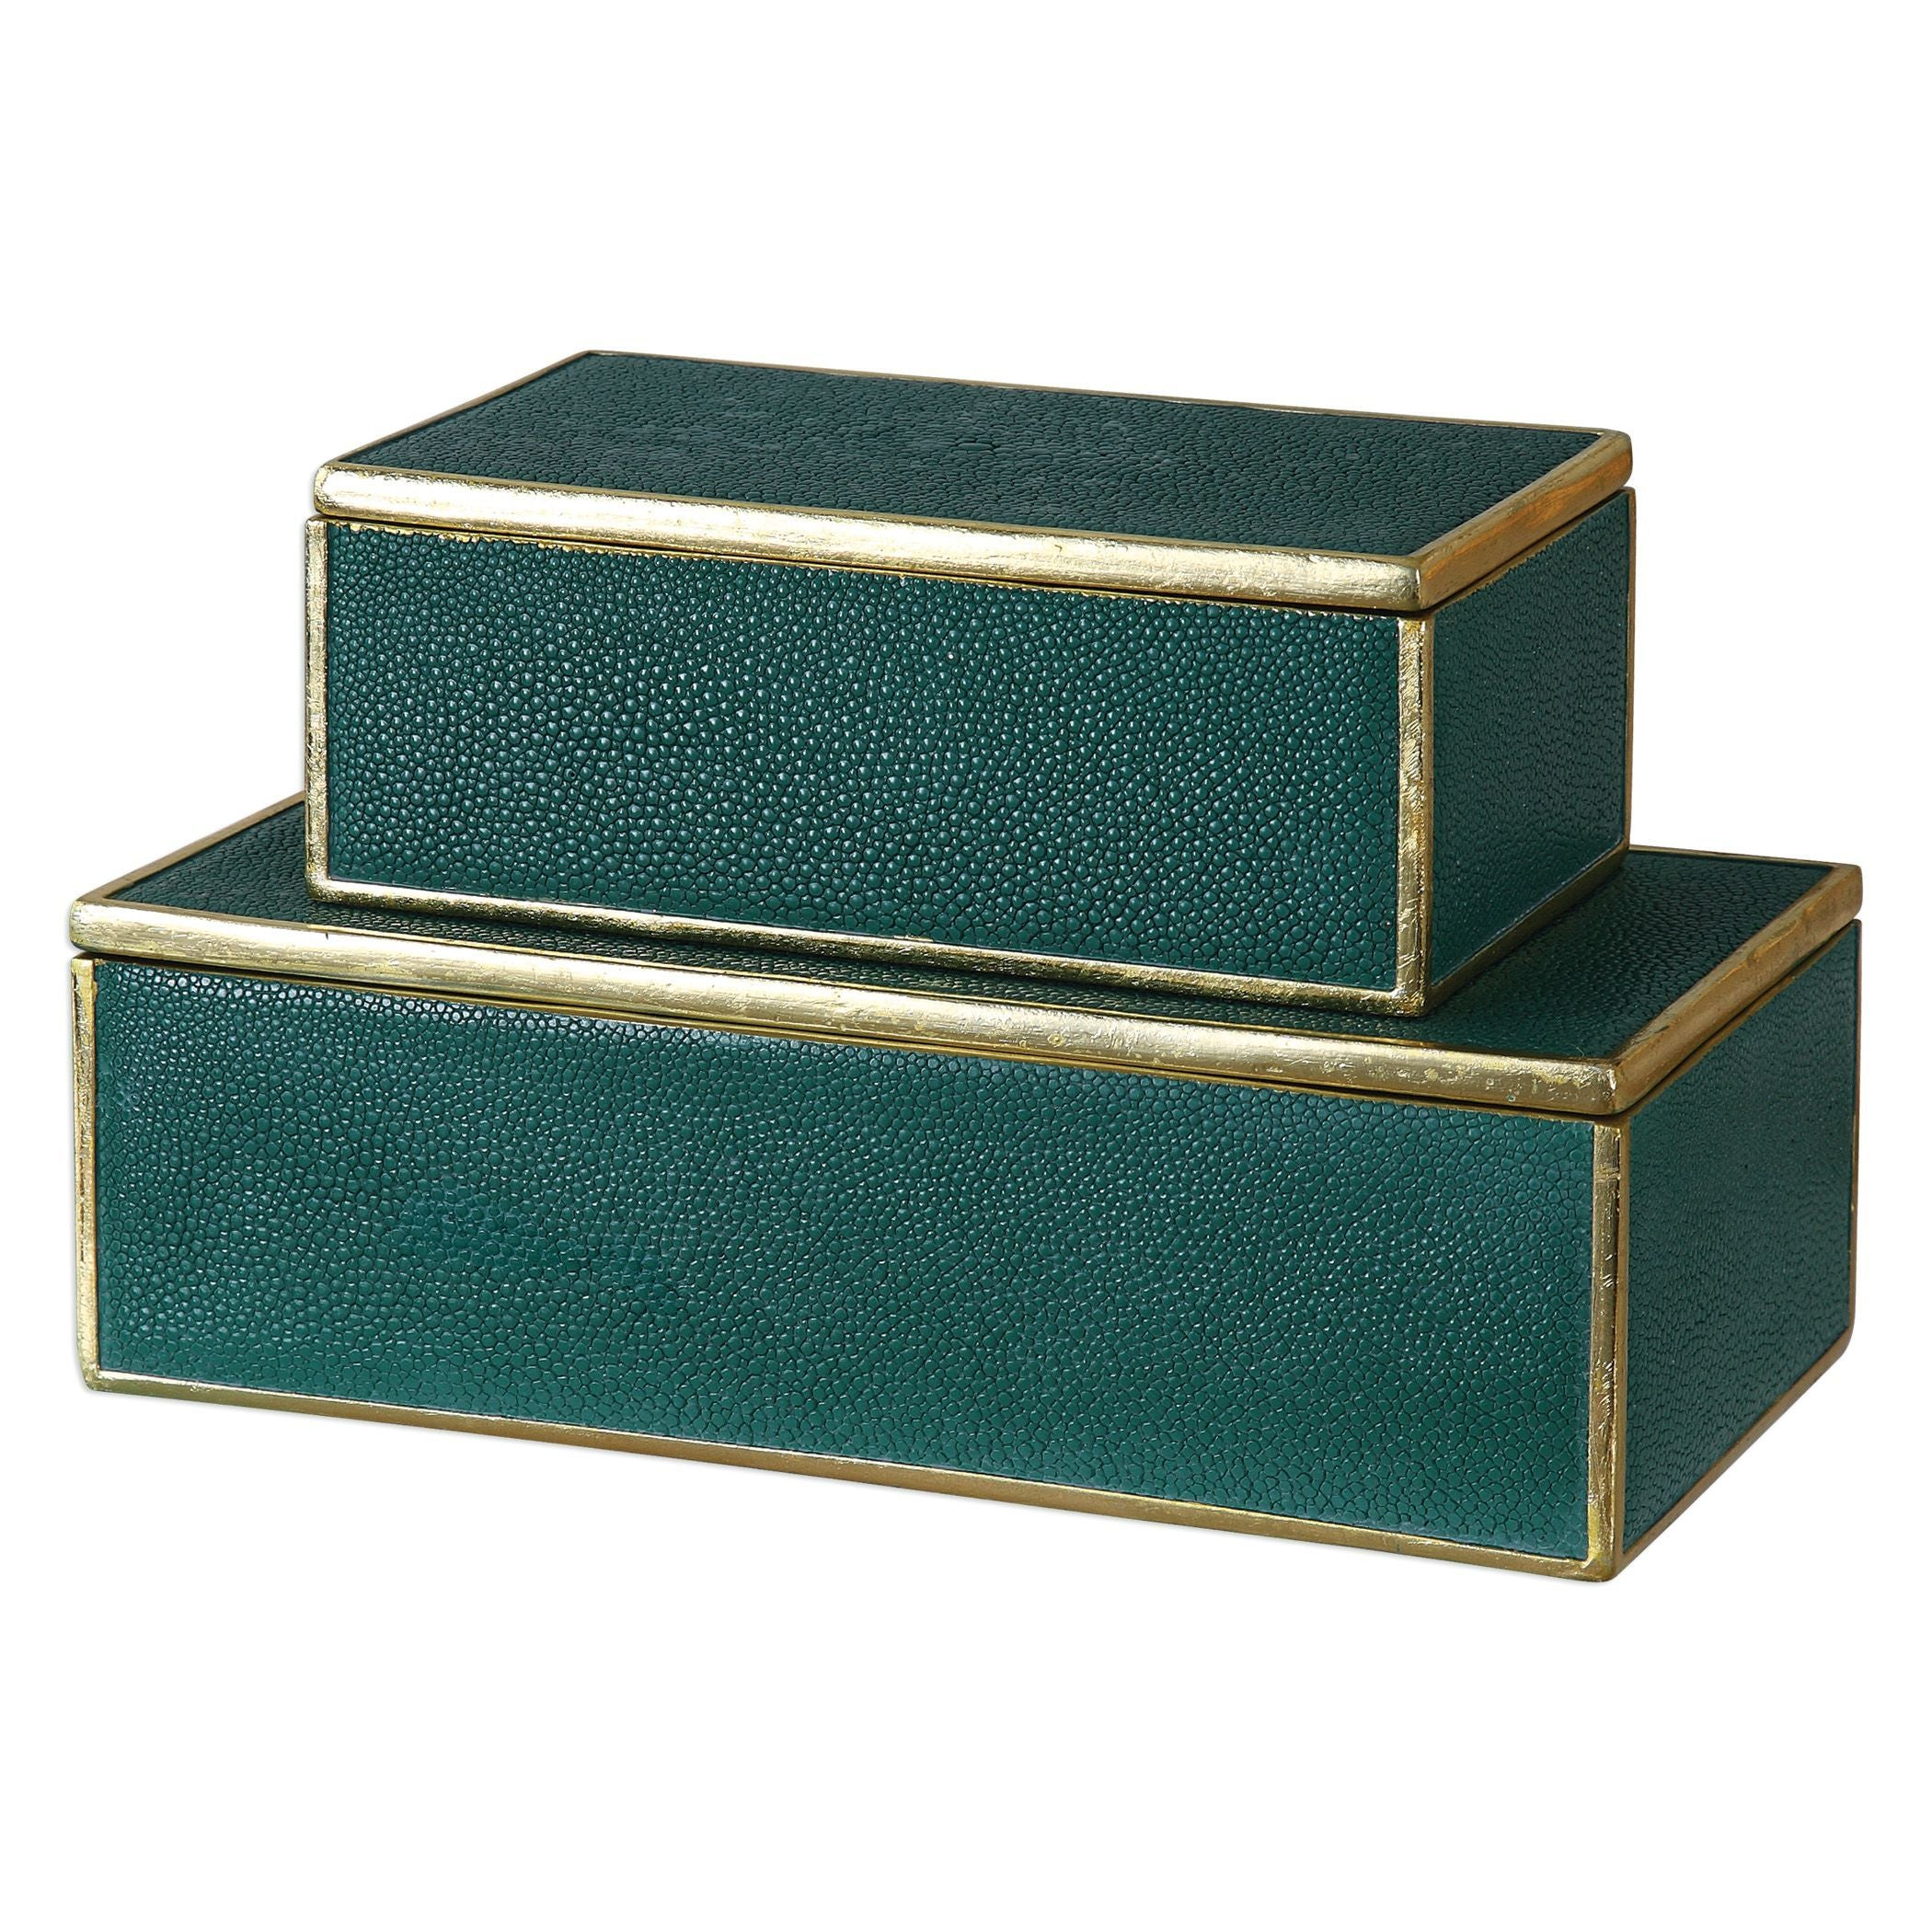 Boxes | Ornamic